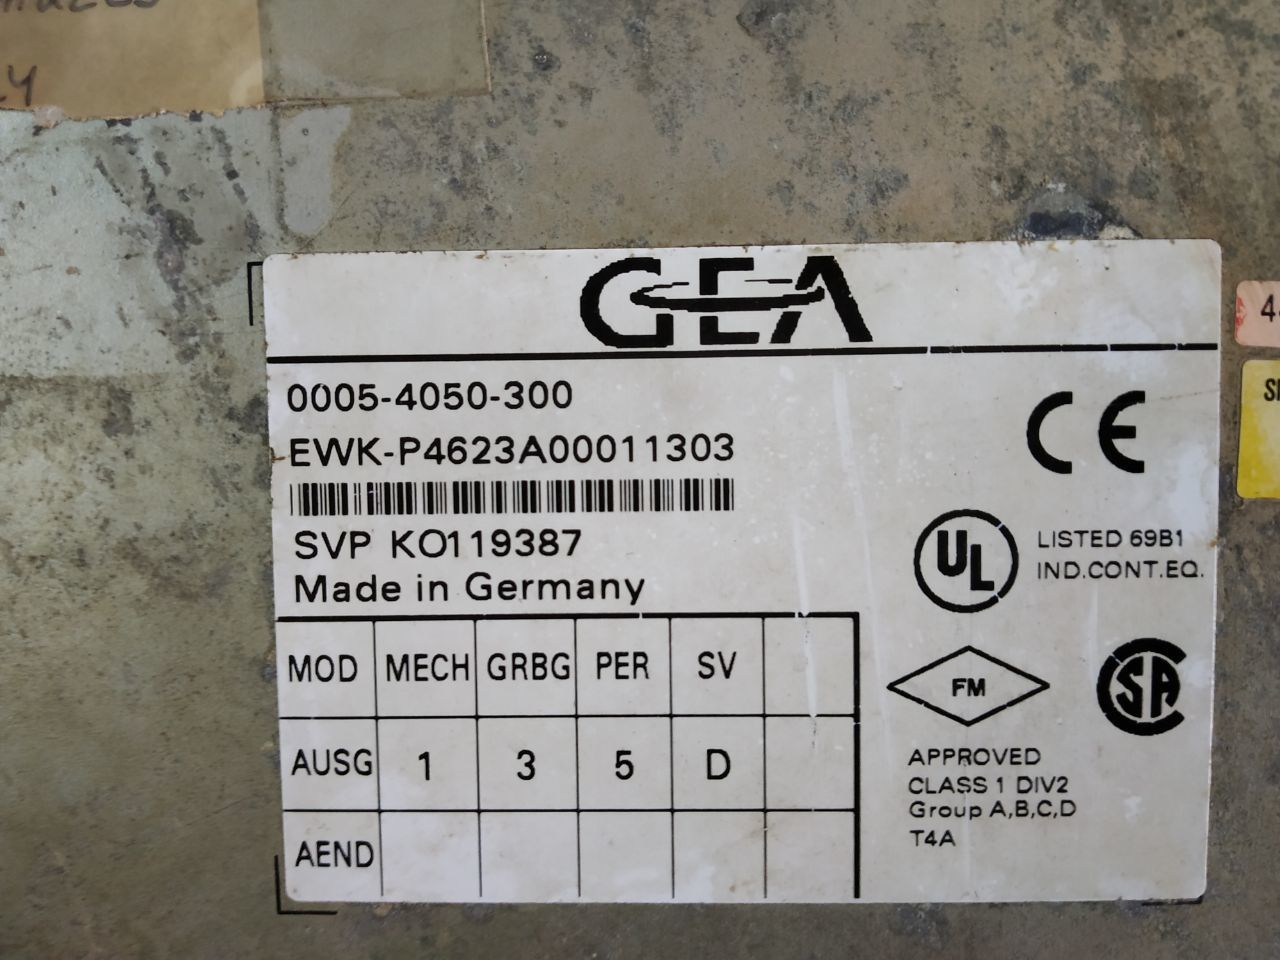 GEA HMI AND PLC 0005-4050-300